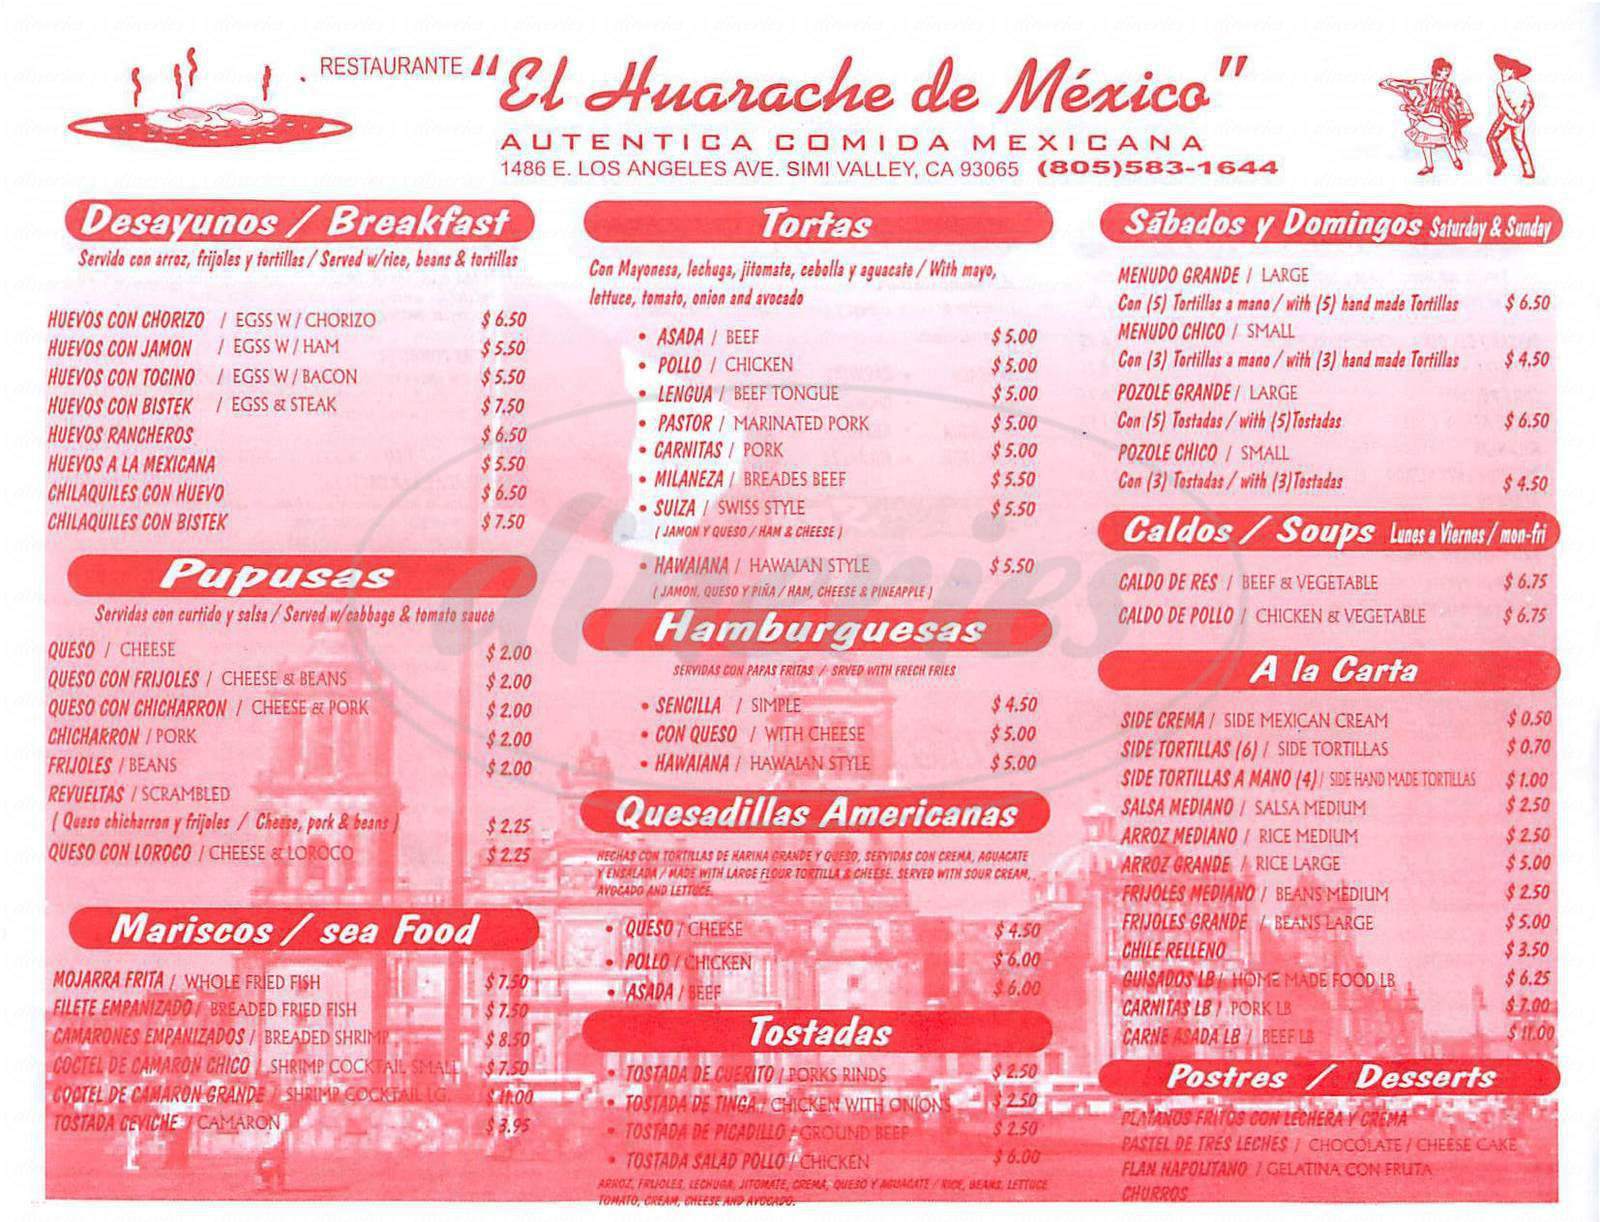 menu for Huarache de Mexico